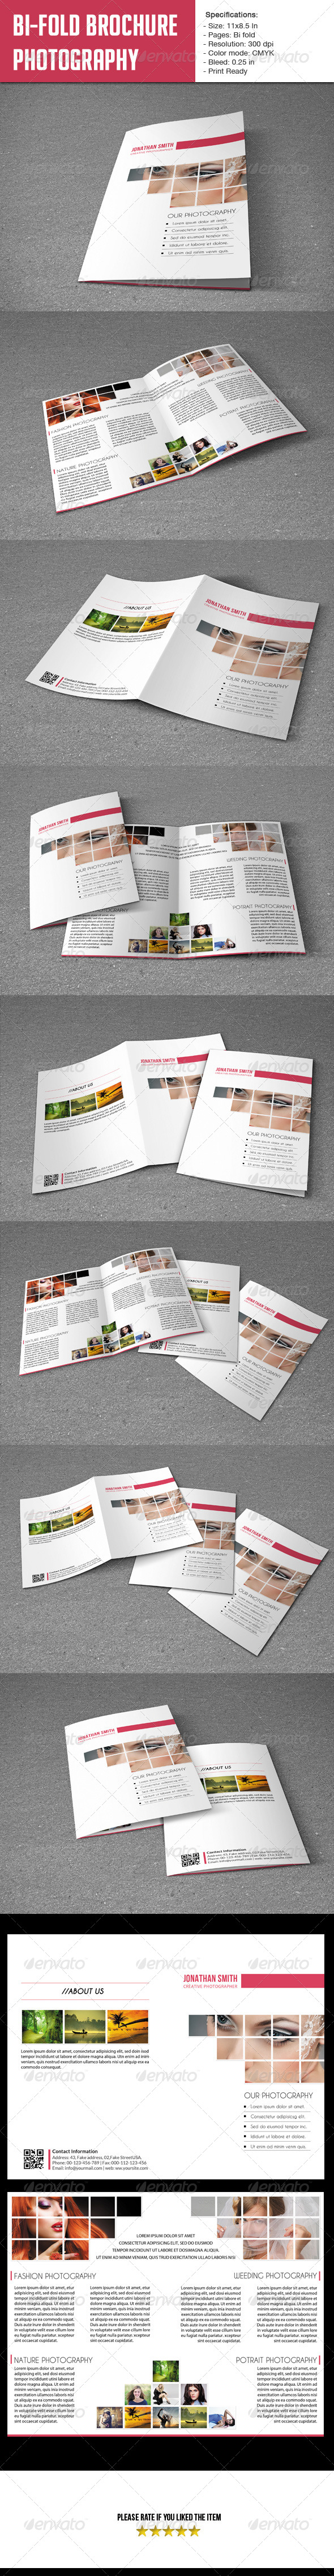 GraphicRiver Bifold Brochure-Photographer 5889746